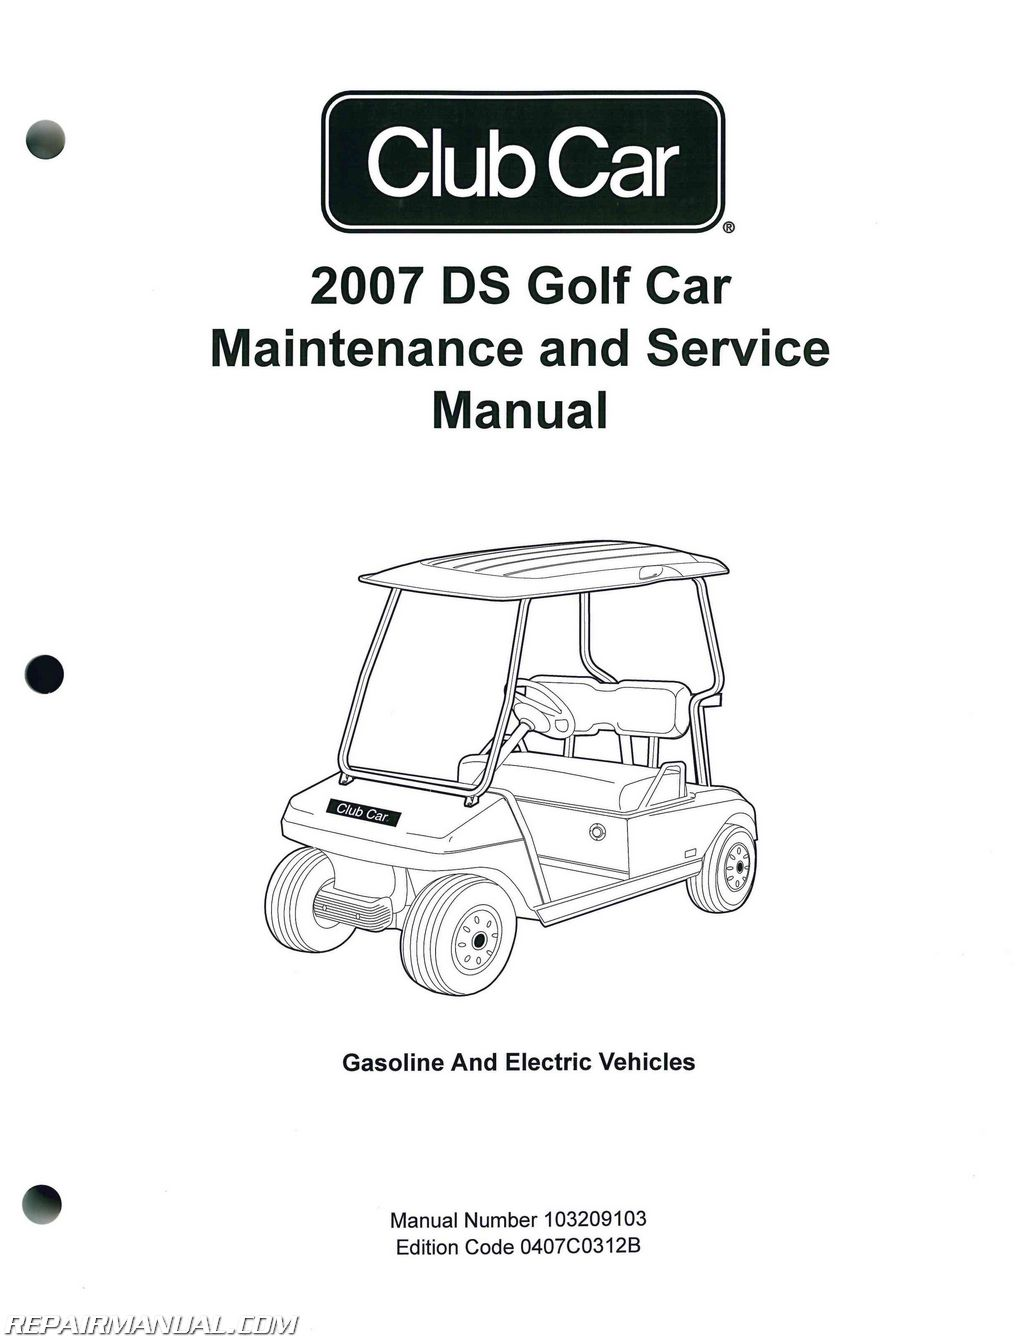 Club Car Wiring Diagram Gas Engine